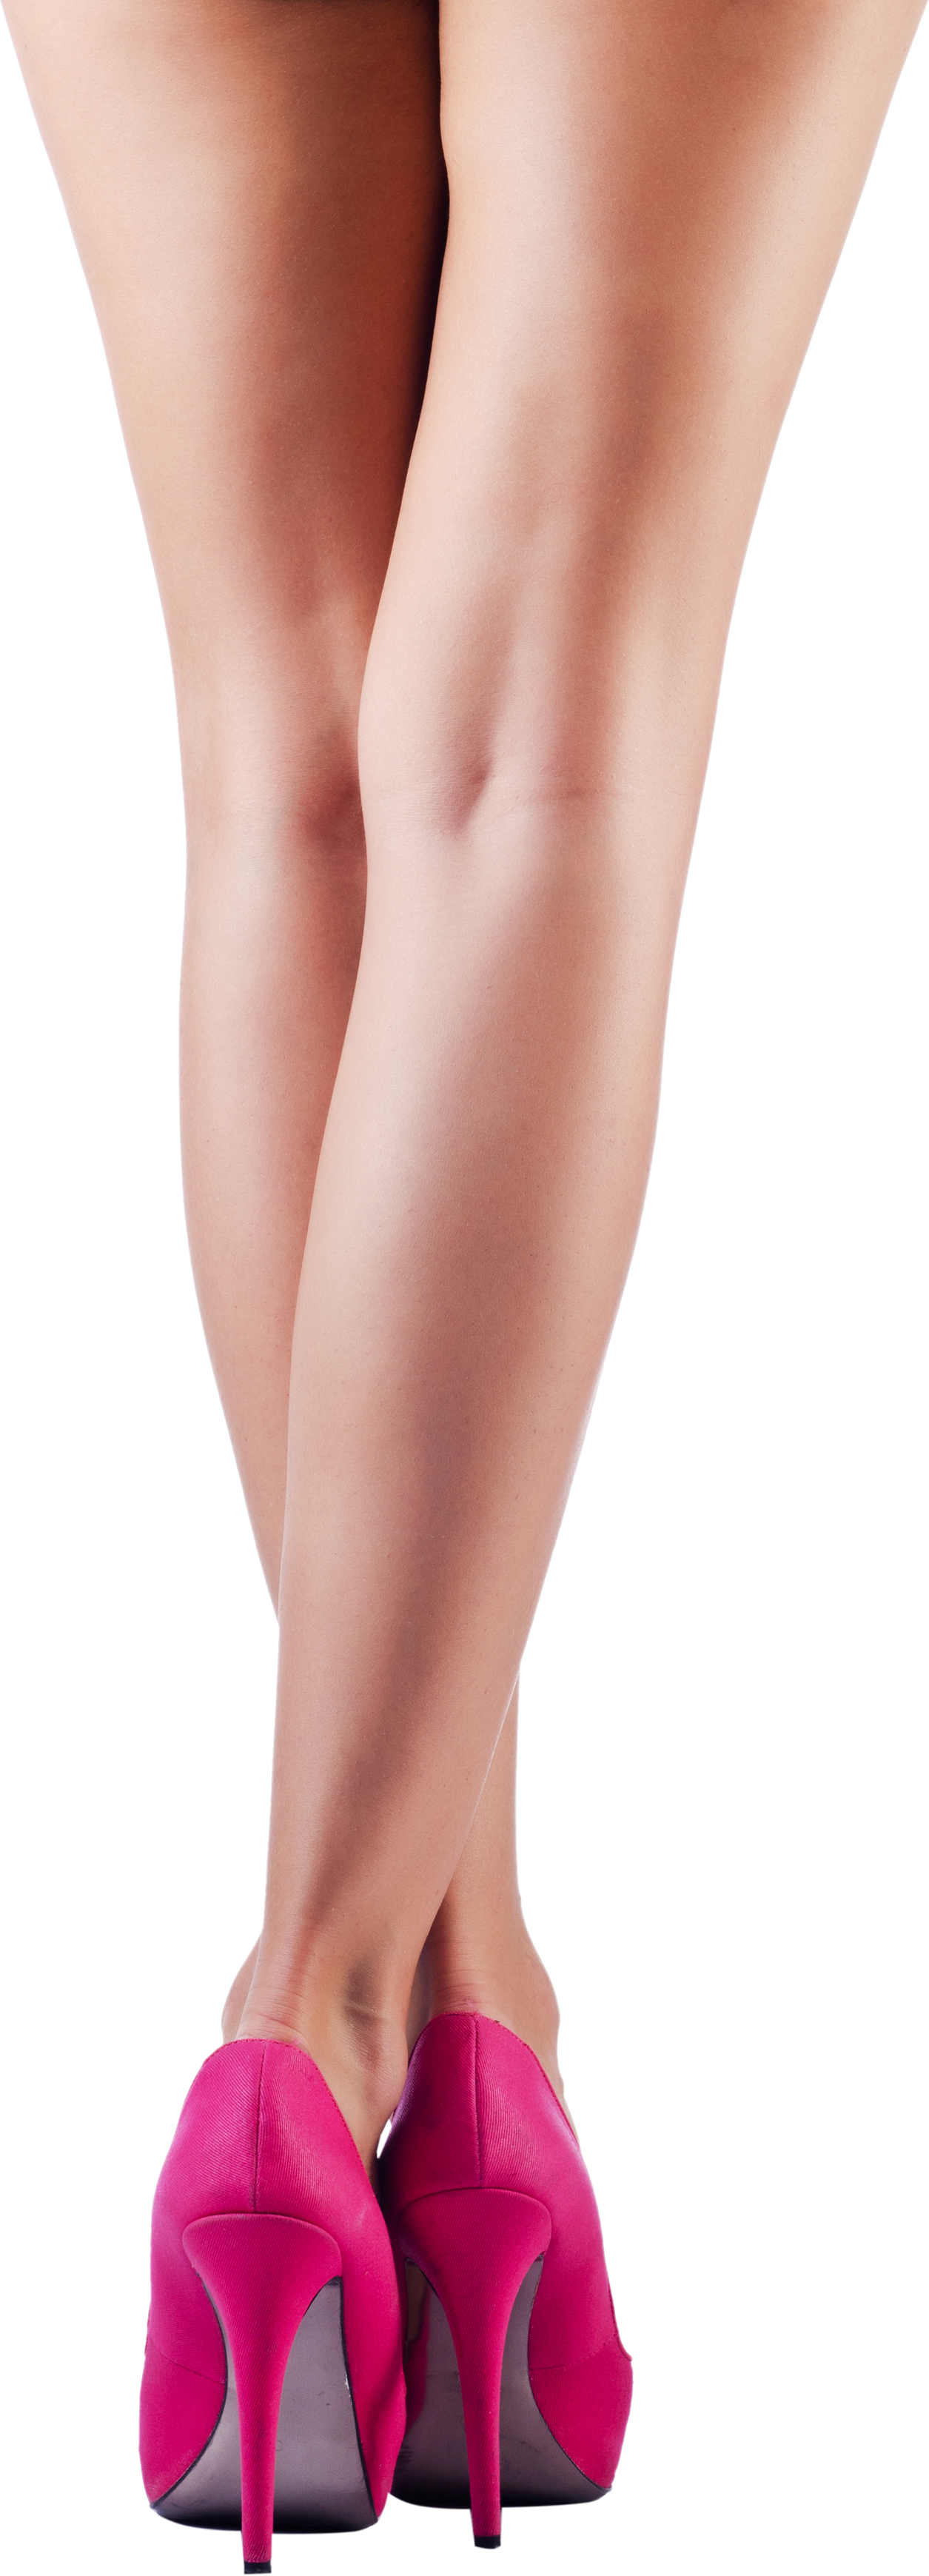 Woman legs png. Images free download women